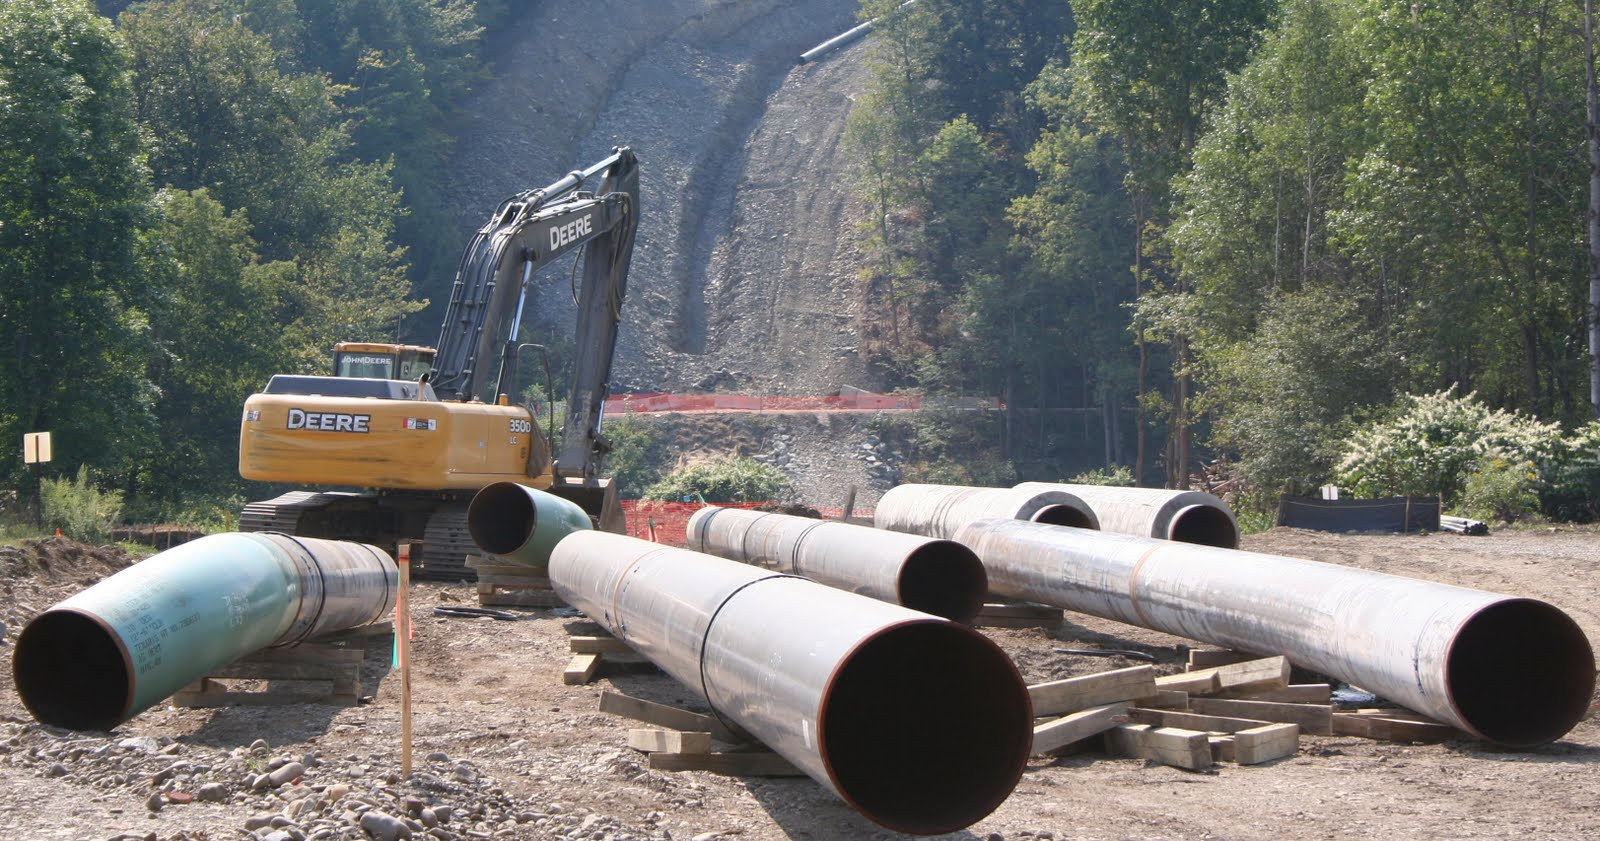 Pipeline proliferation protests